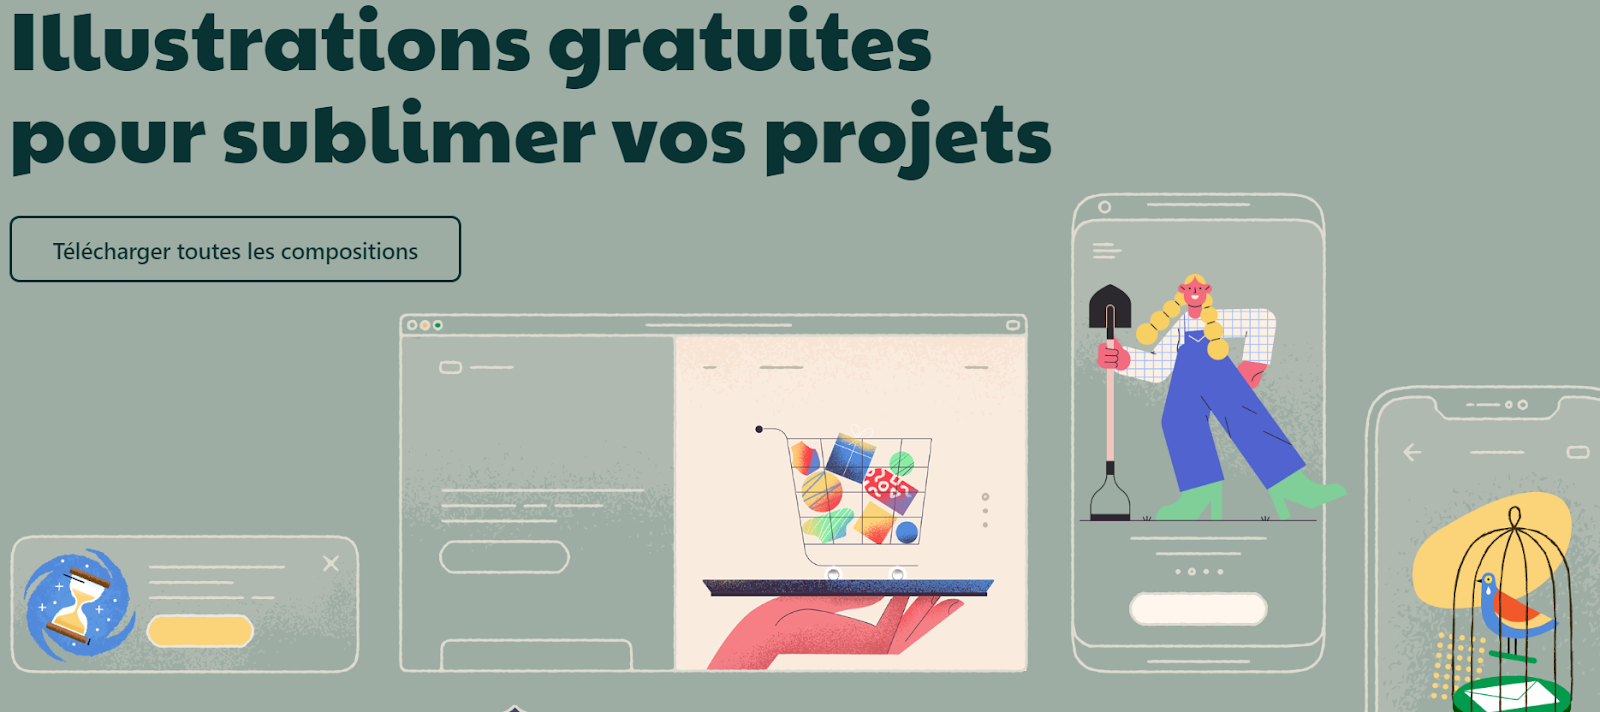 icones8 - banque d'illustrations gratuites